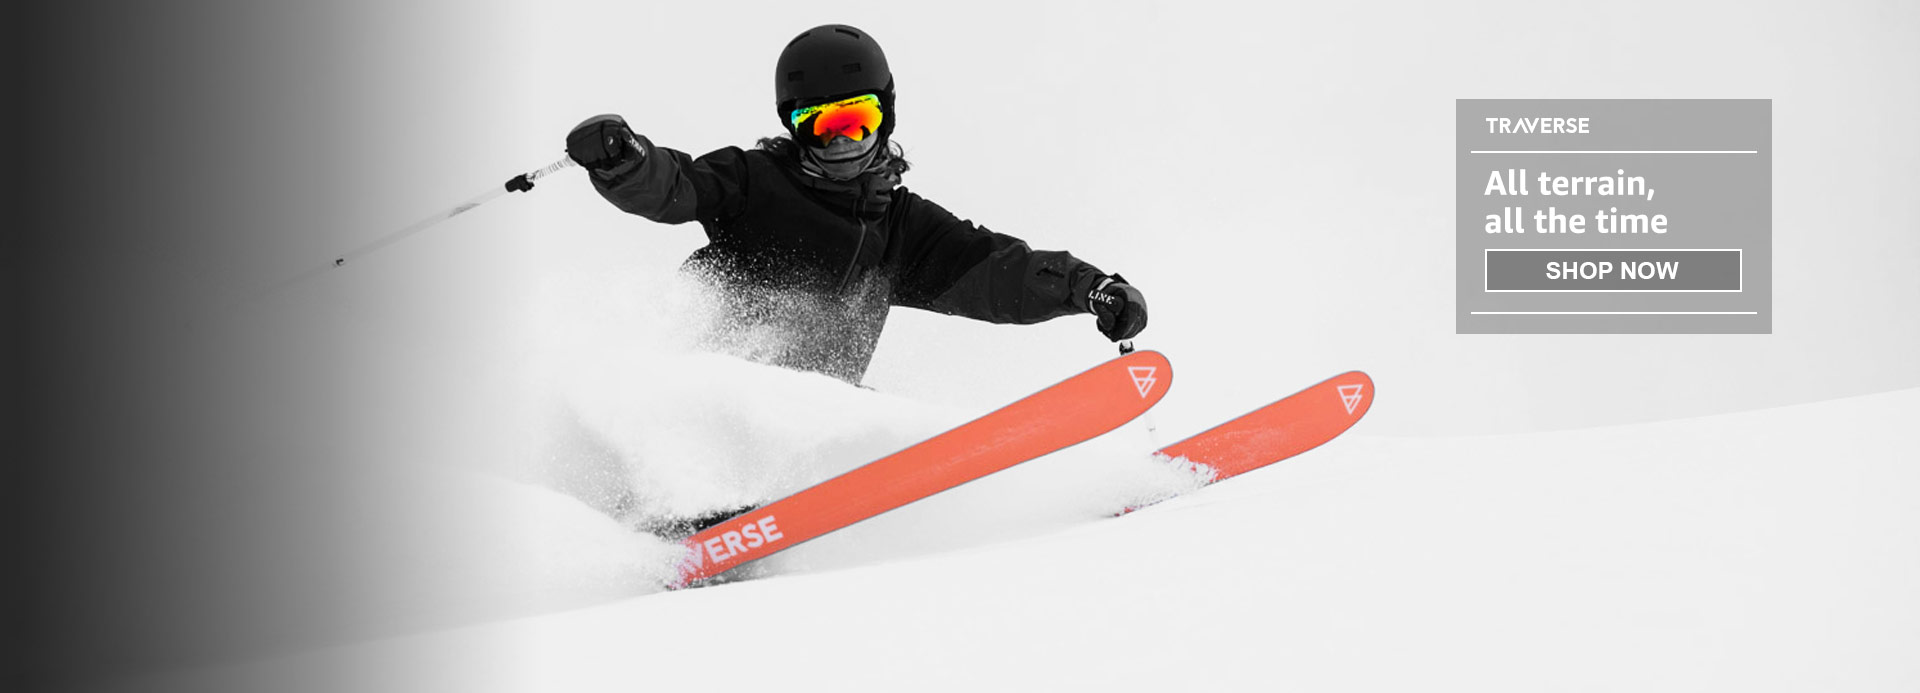 Traverse Skis from Outdoor Recreation on Amazon